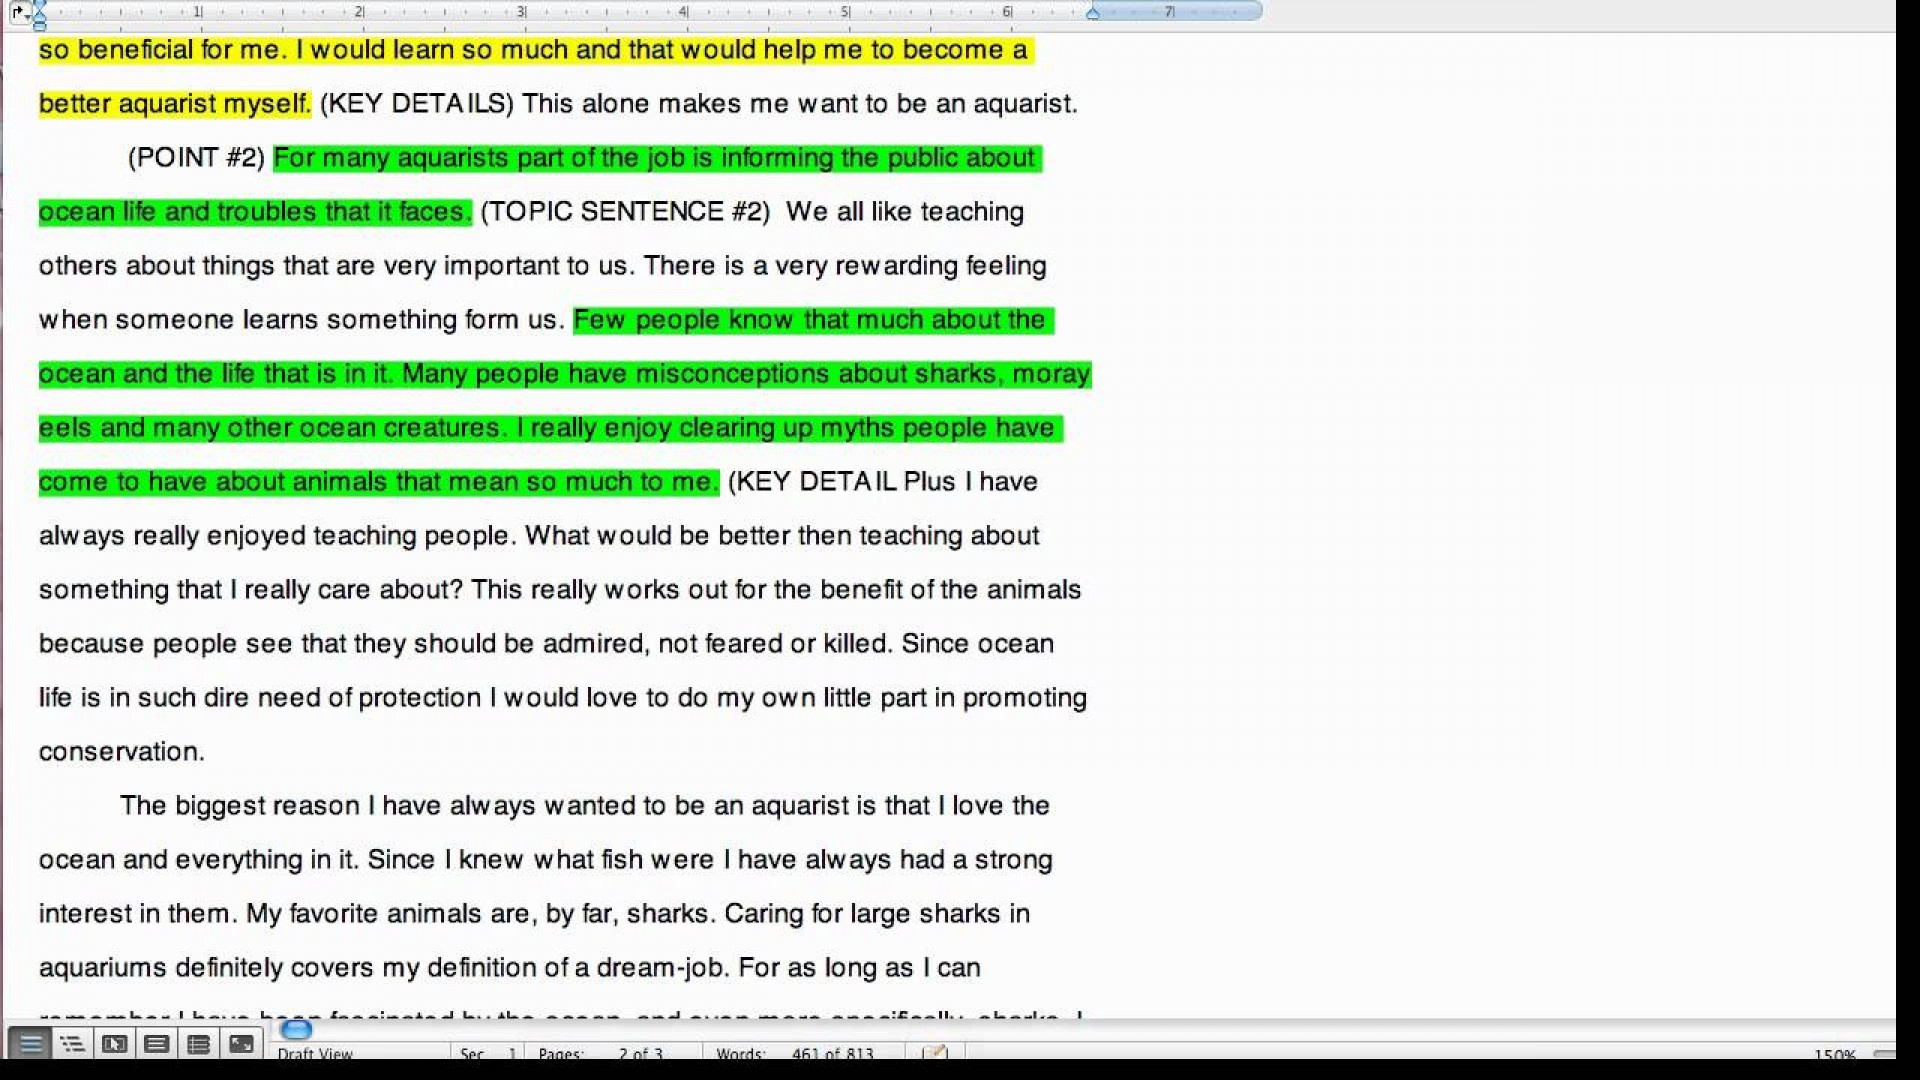 004 Essay Example Maxresdefault Expository Cause And Surprising Effect Examples Topics 1920